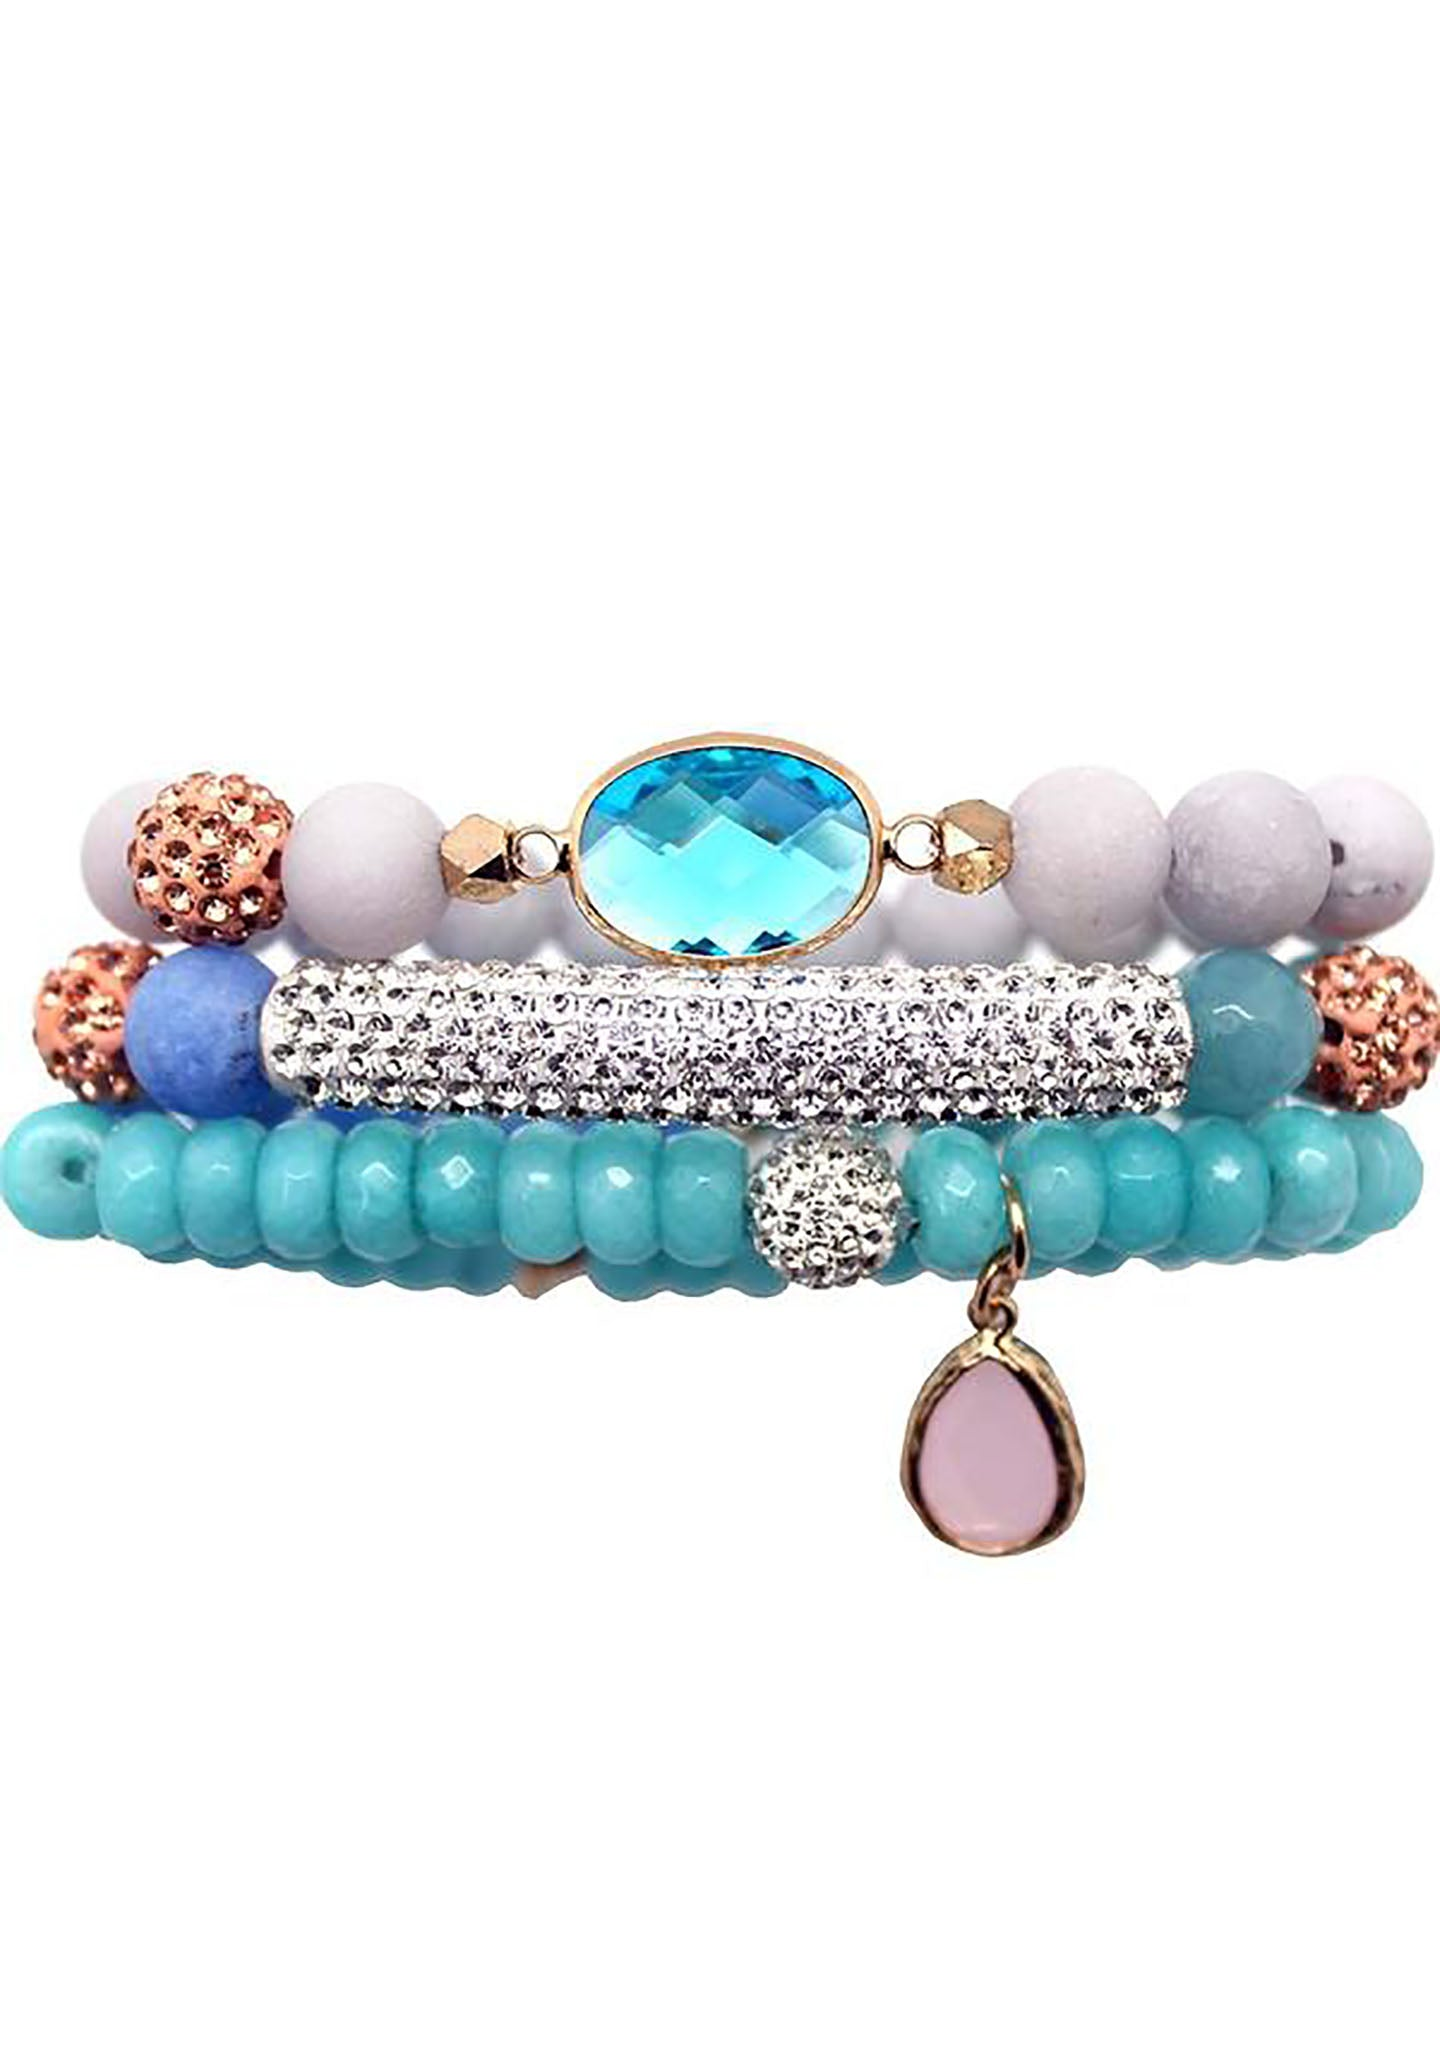 Erimish Travel to Me Albany Bracelet Stack